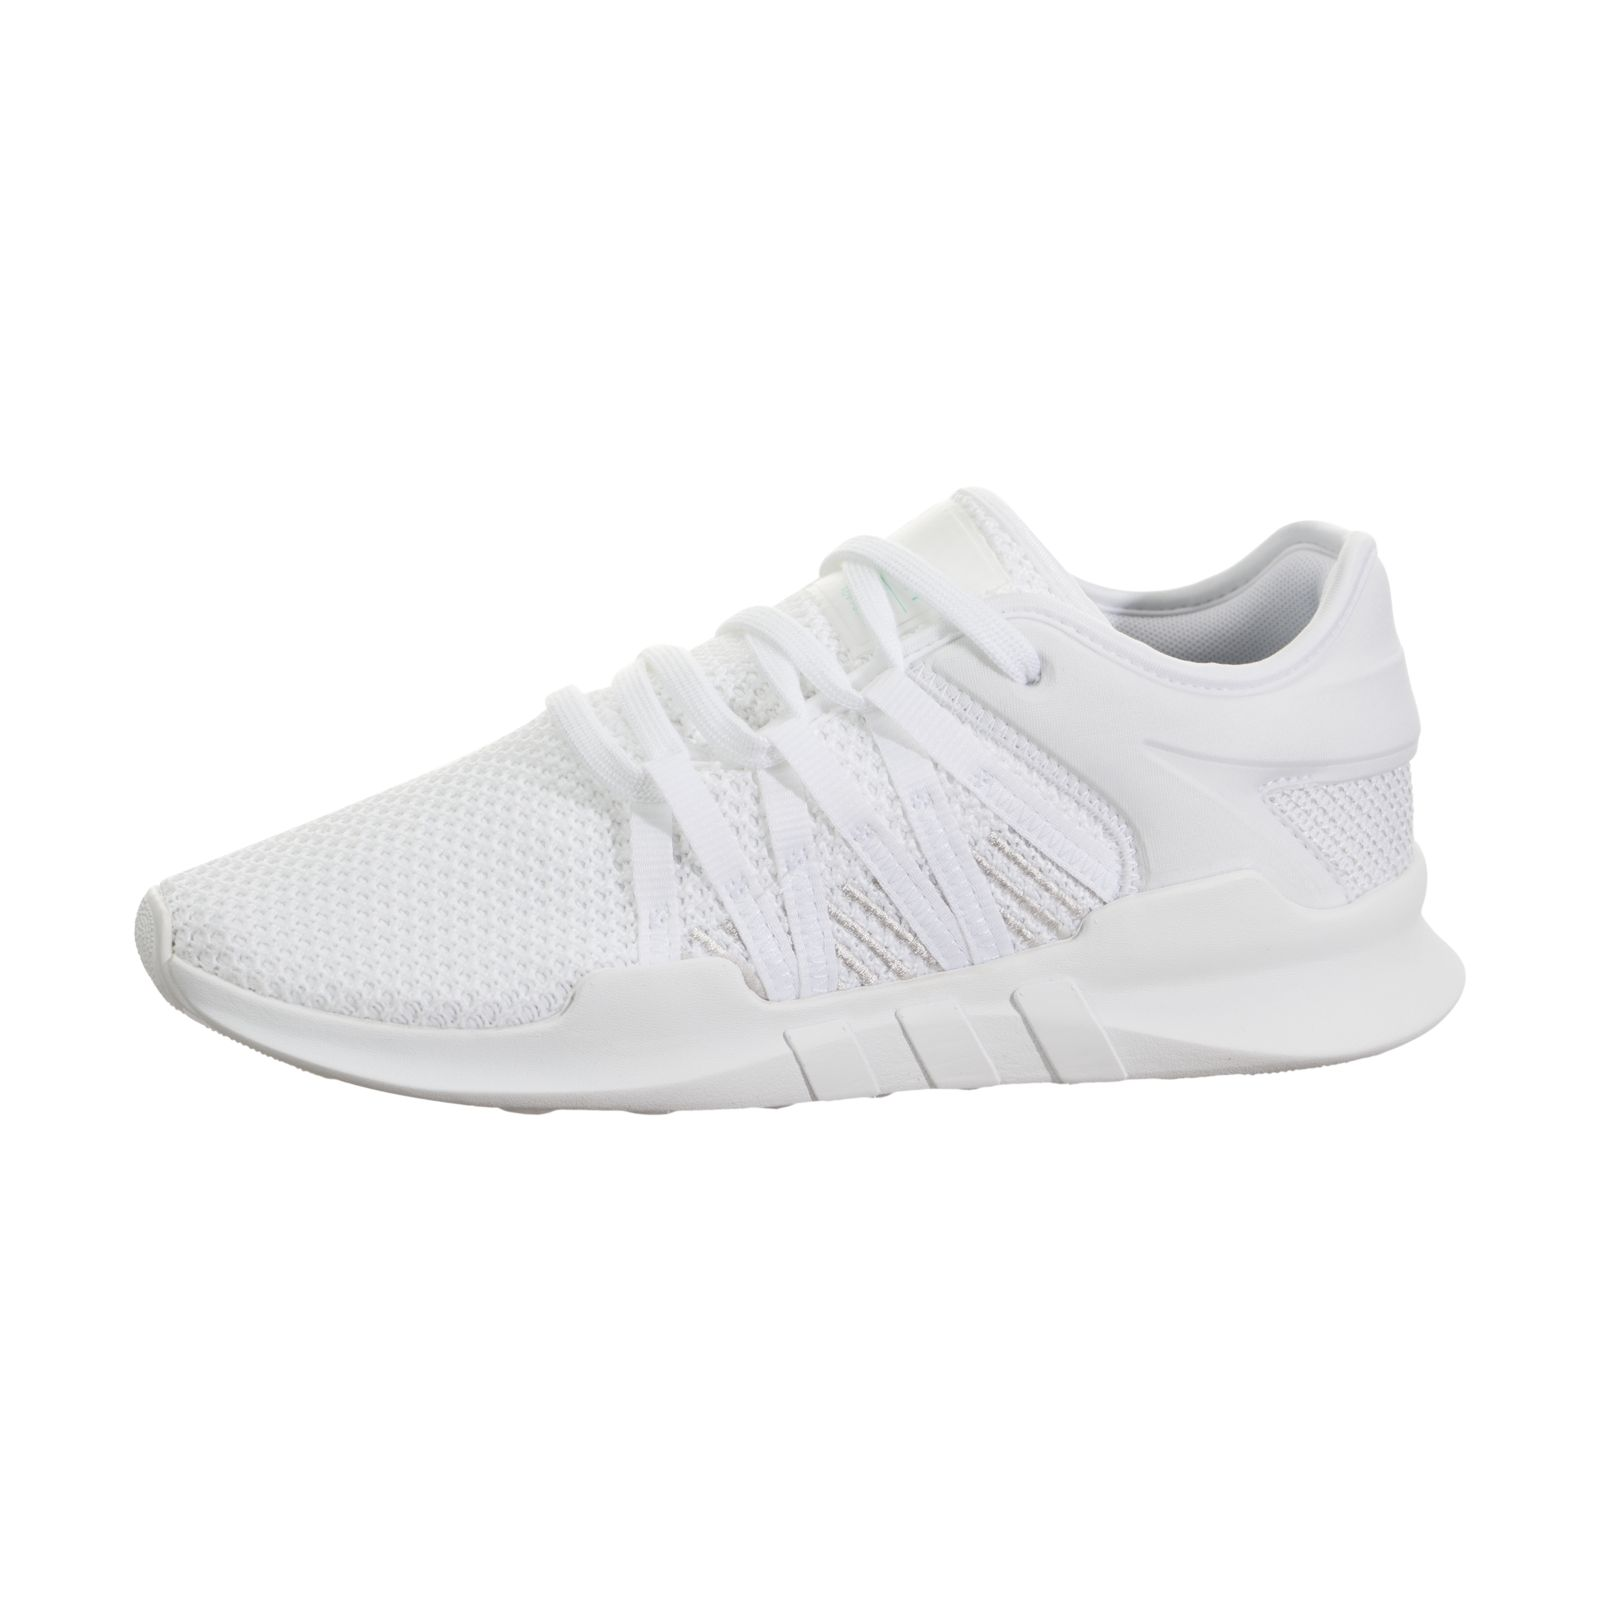 new arrivals 2b6a4 1ab76 Image is loading Adidas-EQT-Racing-ADV-W-by9796